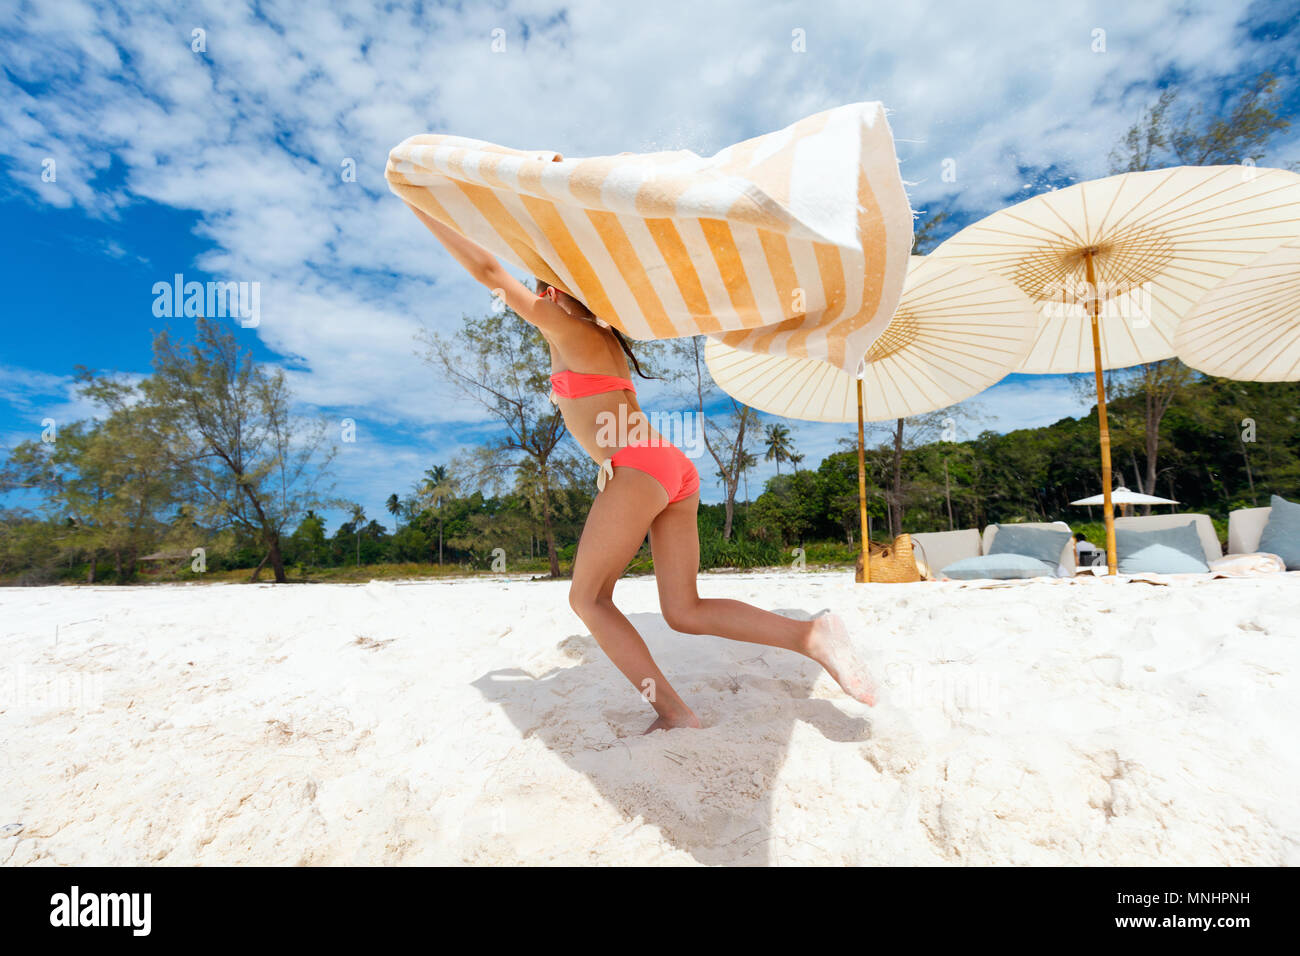 Cute little girl having fun running with towel and enjoying vacation on tropical beach with white sand and turquoise ocean water - Stock Image